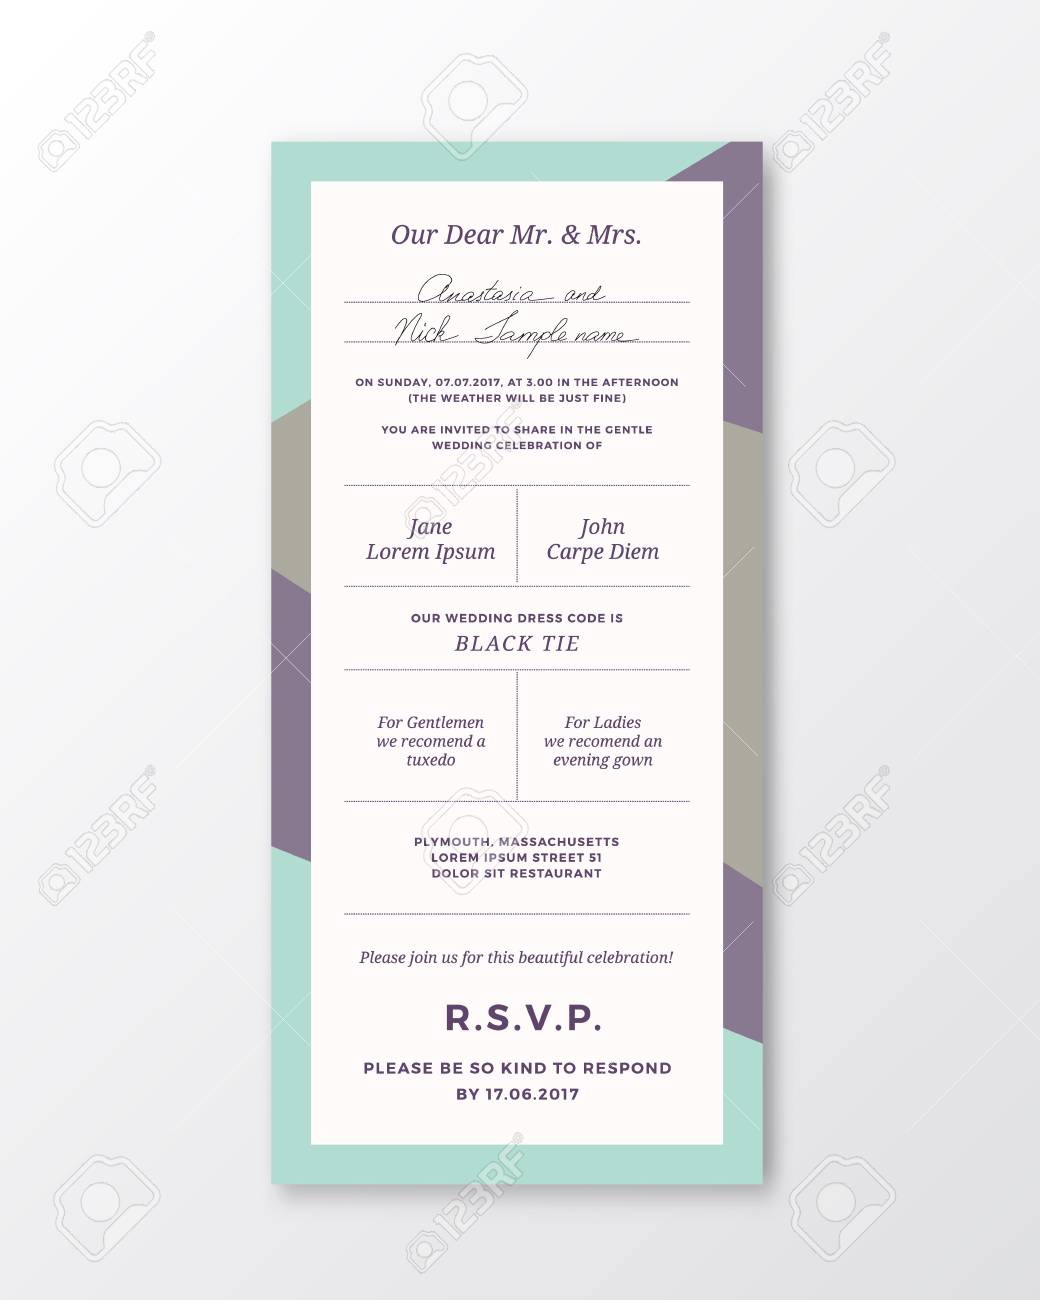 Vector Wedding Invitation Template Modern Typography And Pastel